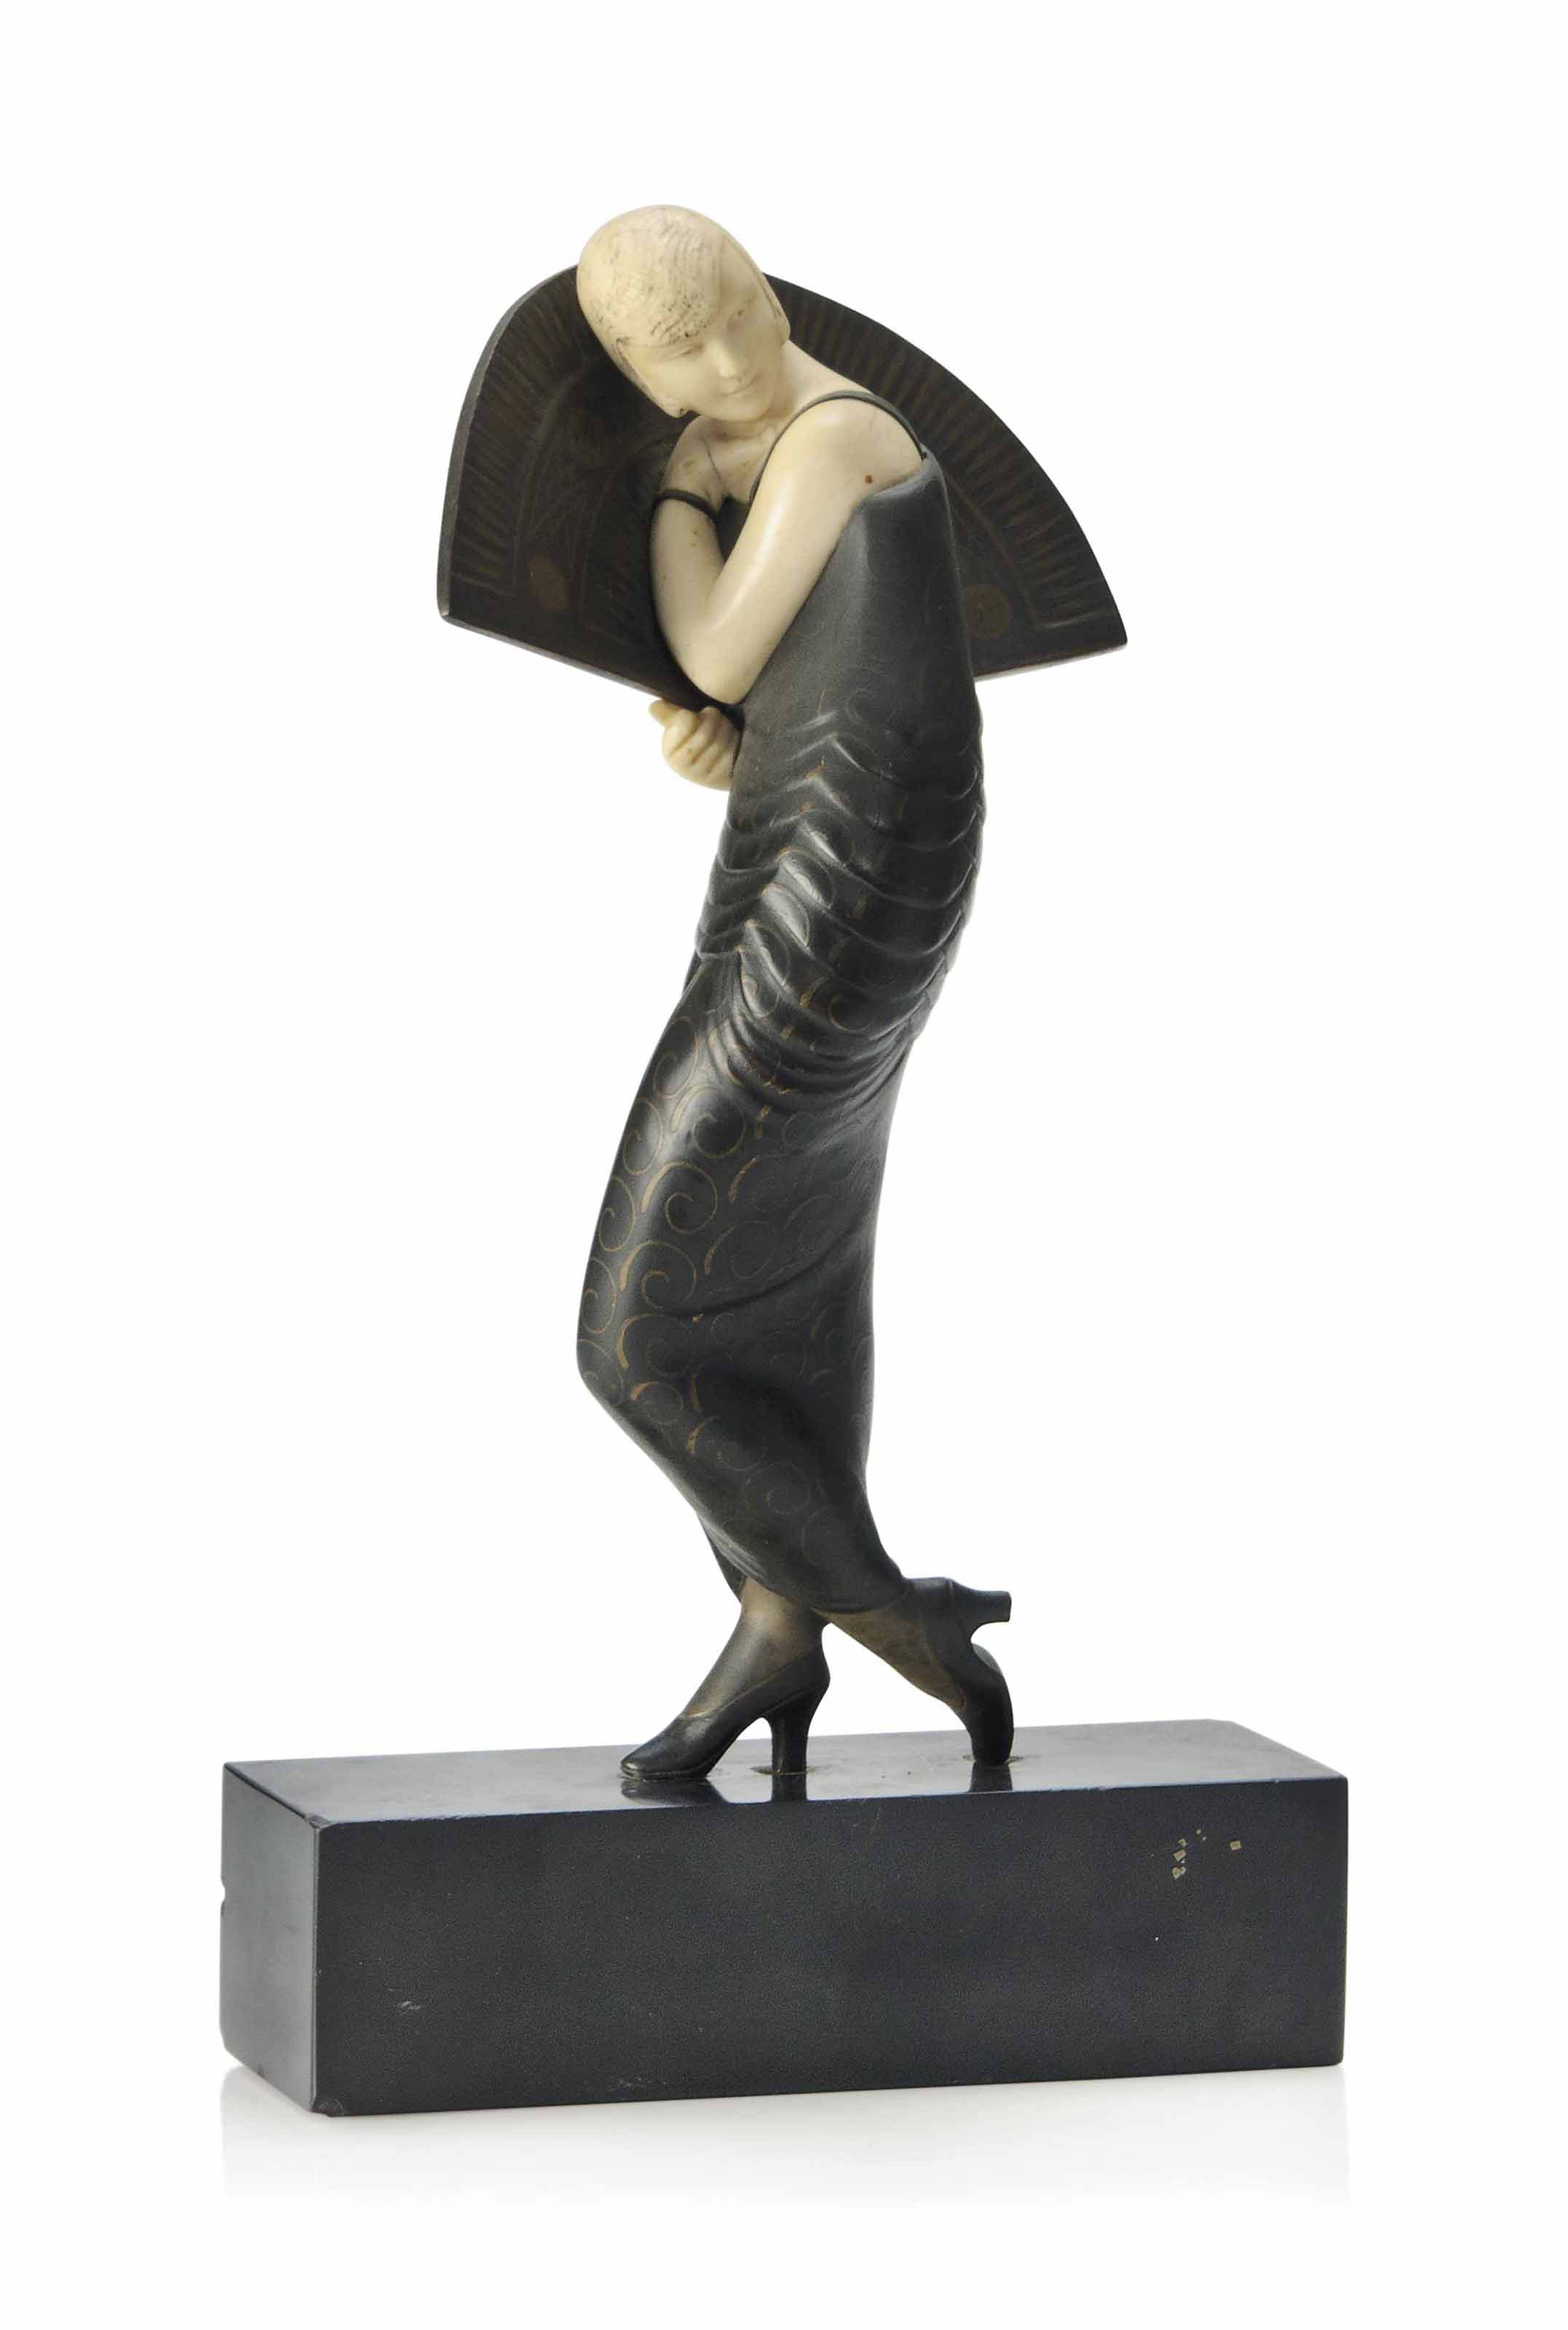 AN ALEXANDRE KELETY PATINATED AND COLD-PAINTED BRONZE AND IVORY FIGURE